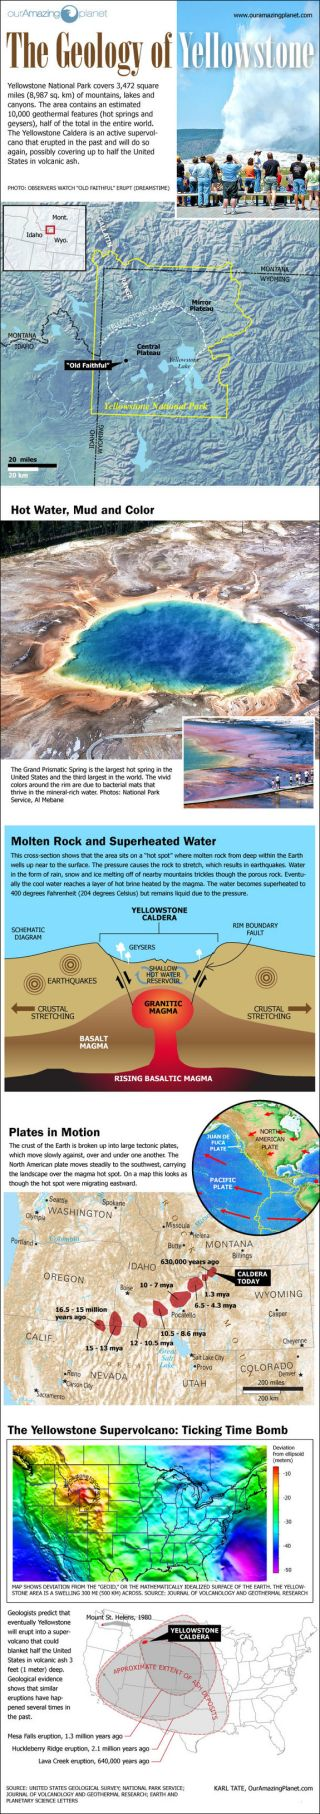 The geology of Yellowstone National Park, including the caldera that underlies it. (Click to enlarge.)